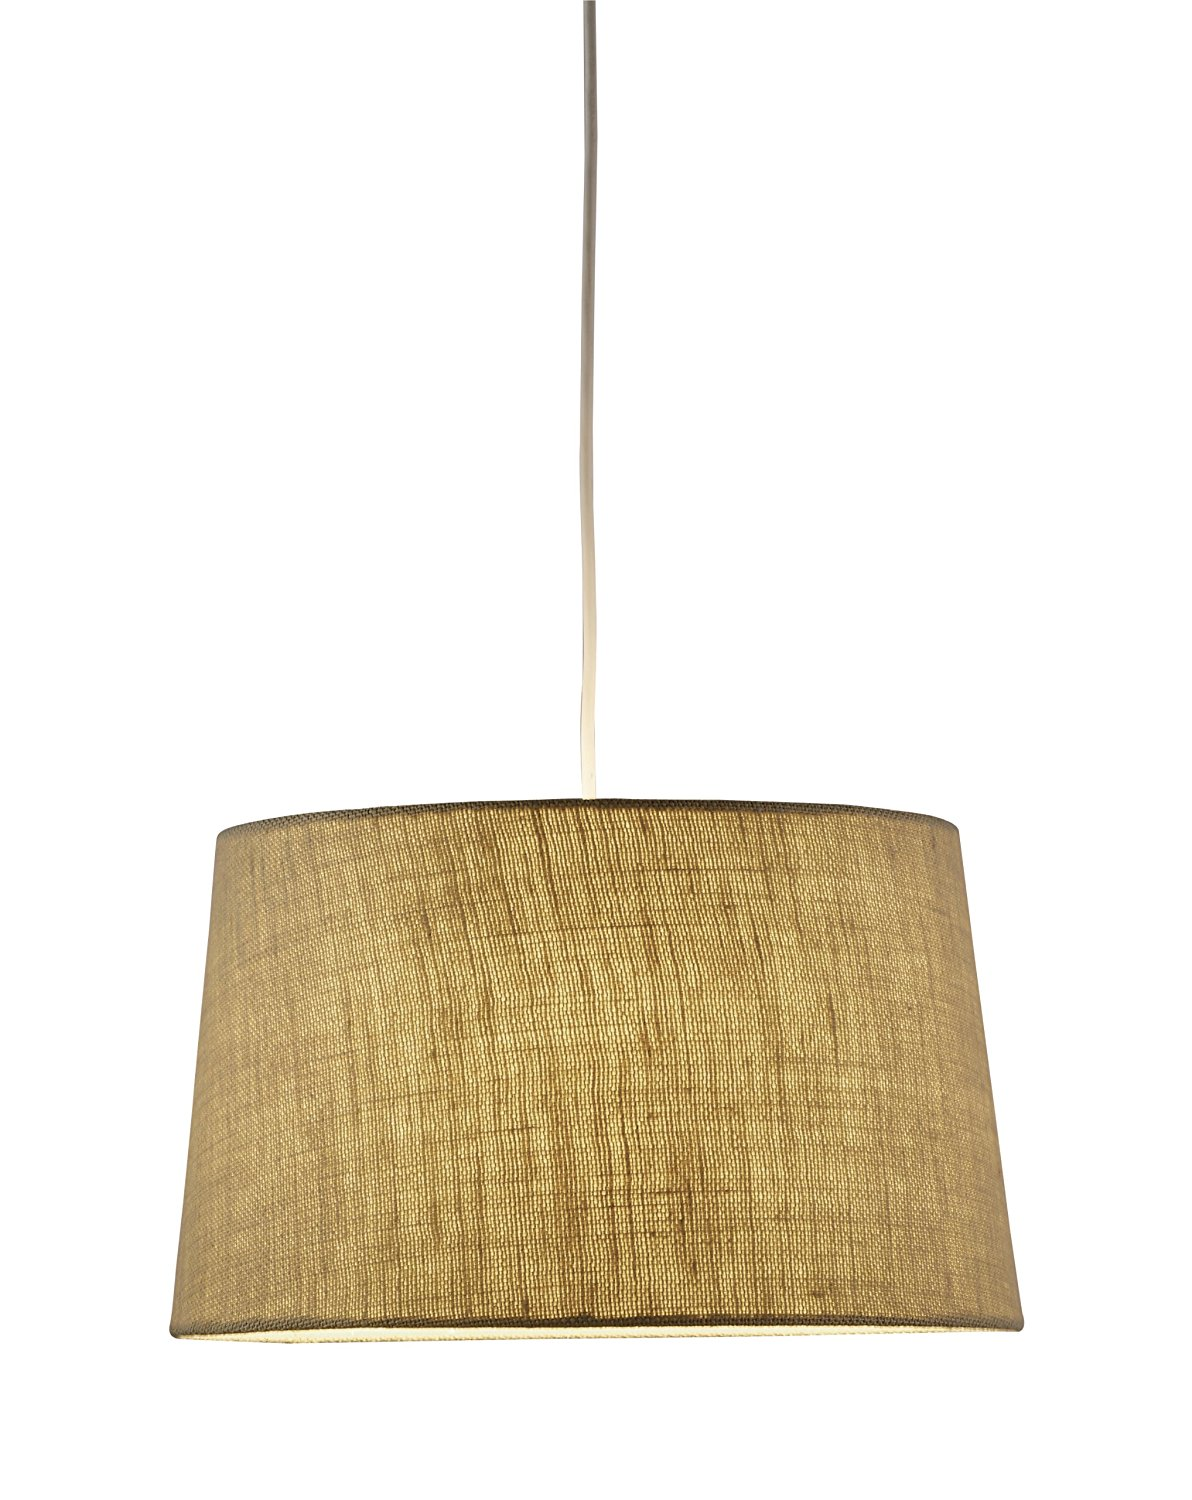 Adesso 4002-18 Harvest Tapered Drum Pendant, Wheat Colored Burlap Fabric